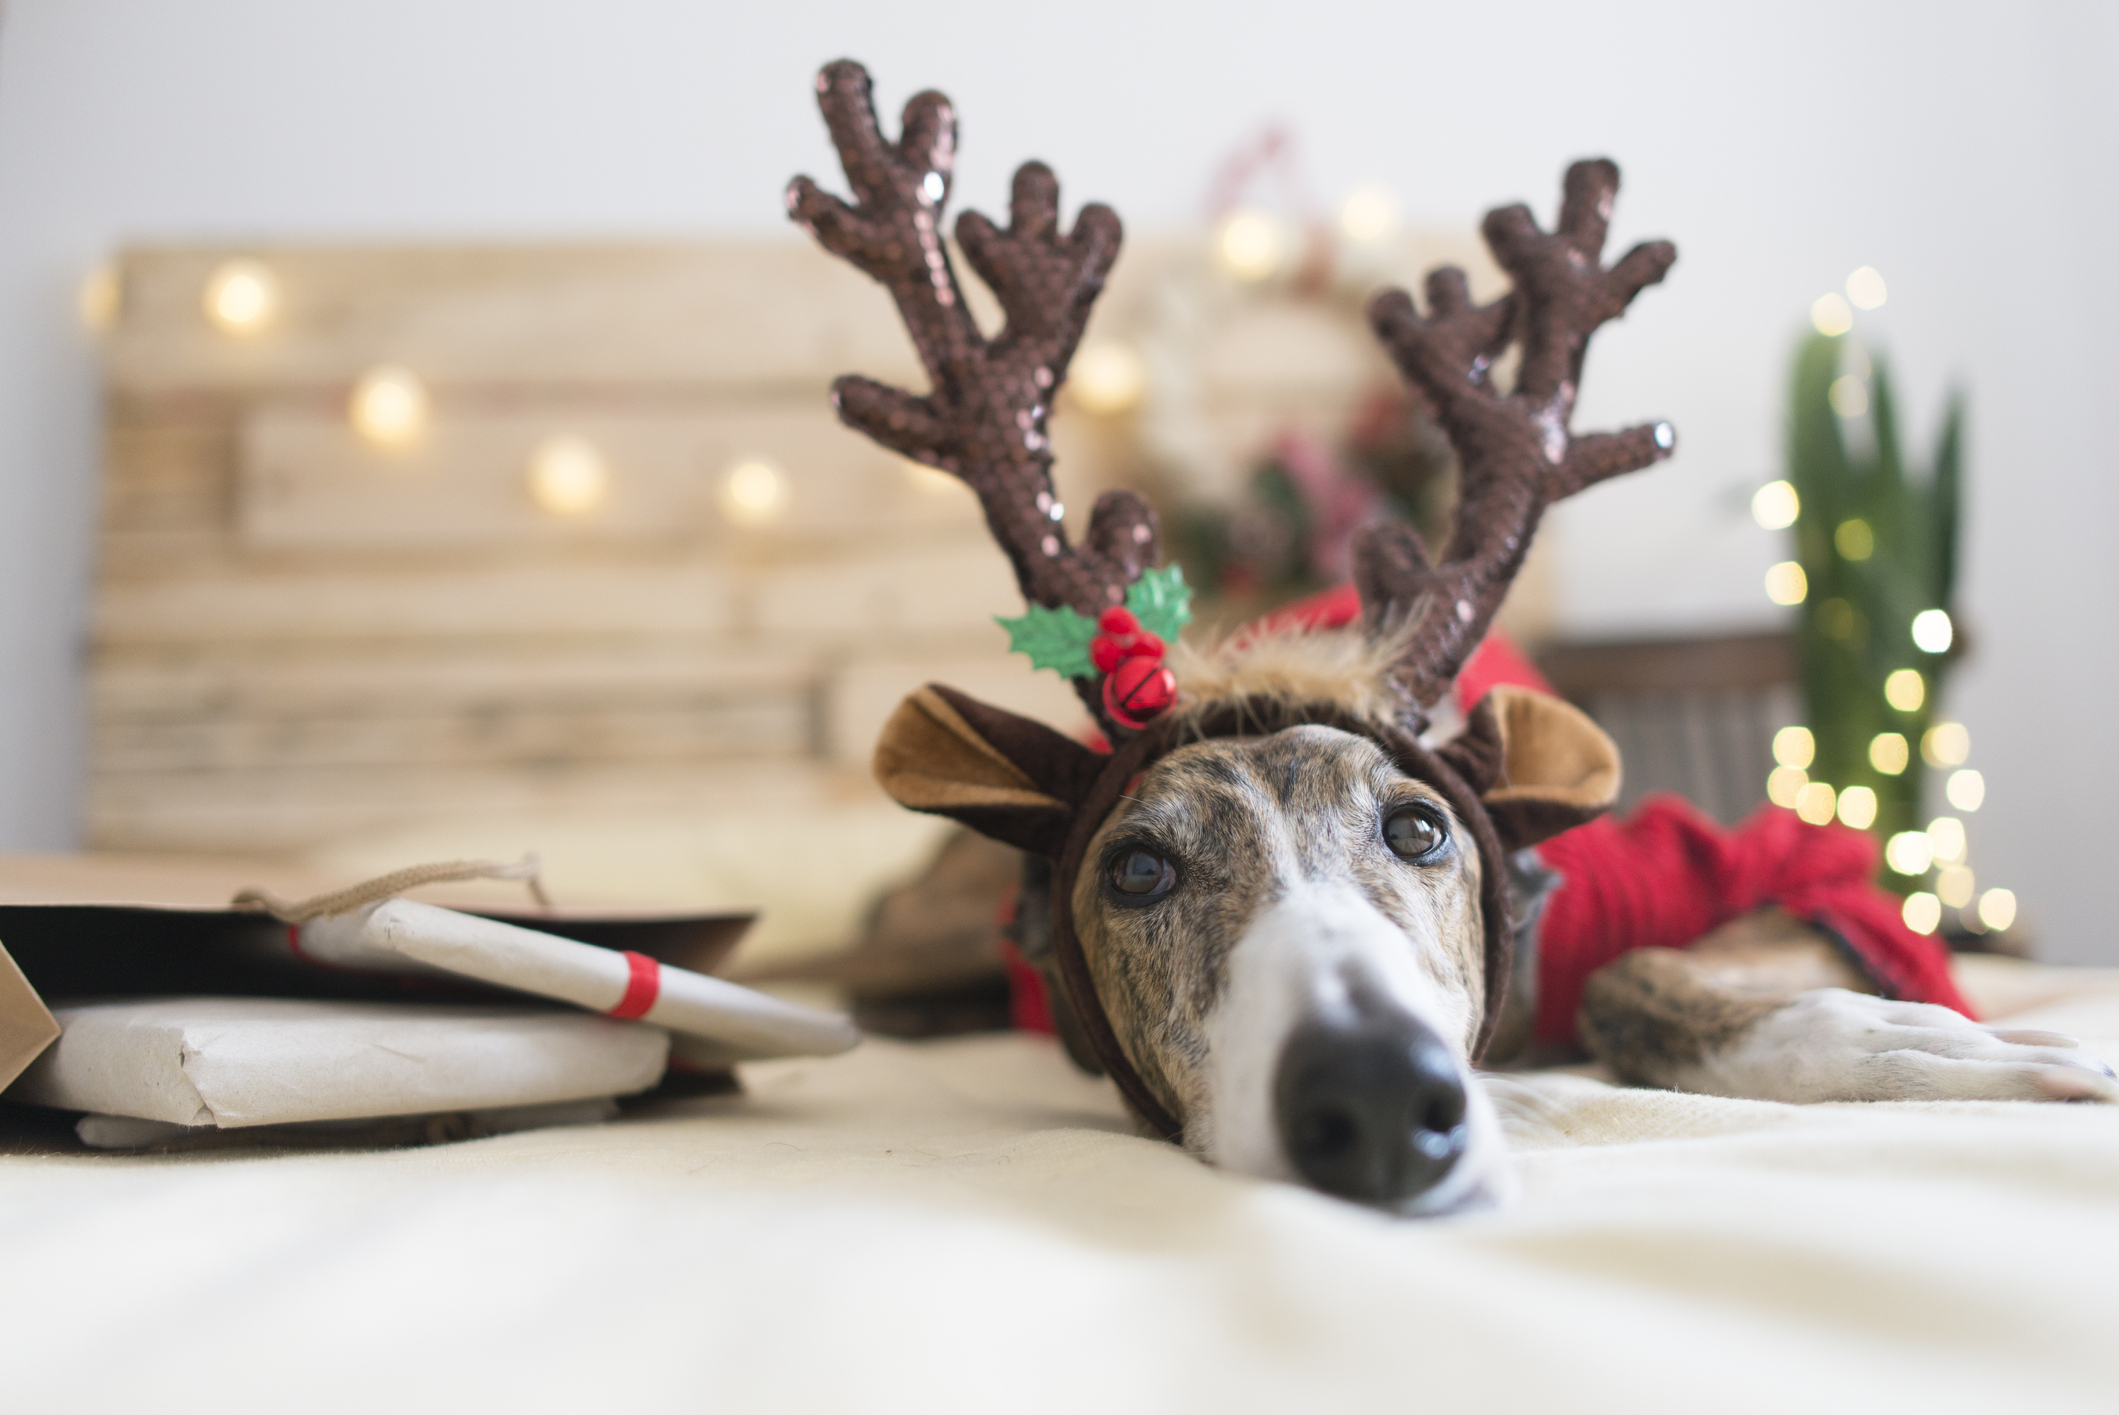 Our pick of the best Christmas outfits for dogs that will make your pooch look even more adorable